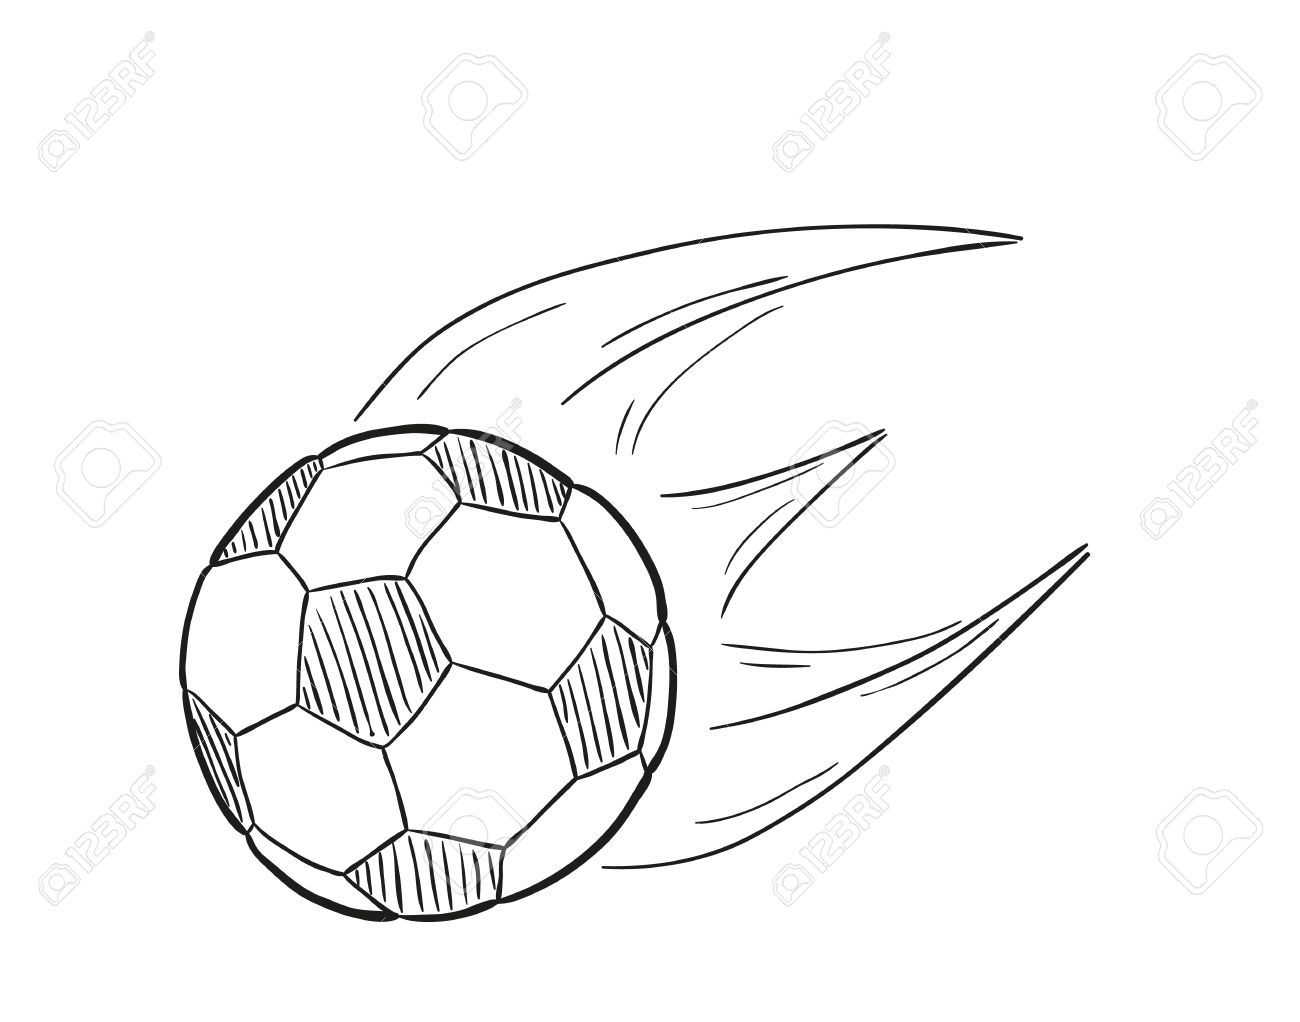 1300x1022 Sketch Of The Flying Football Ball With Flames Behind On White